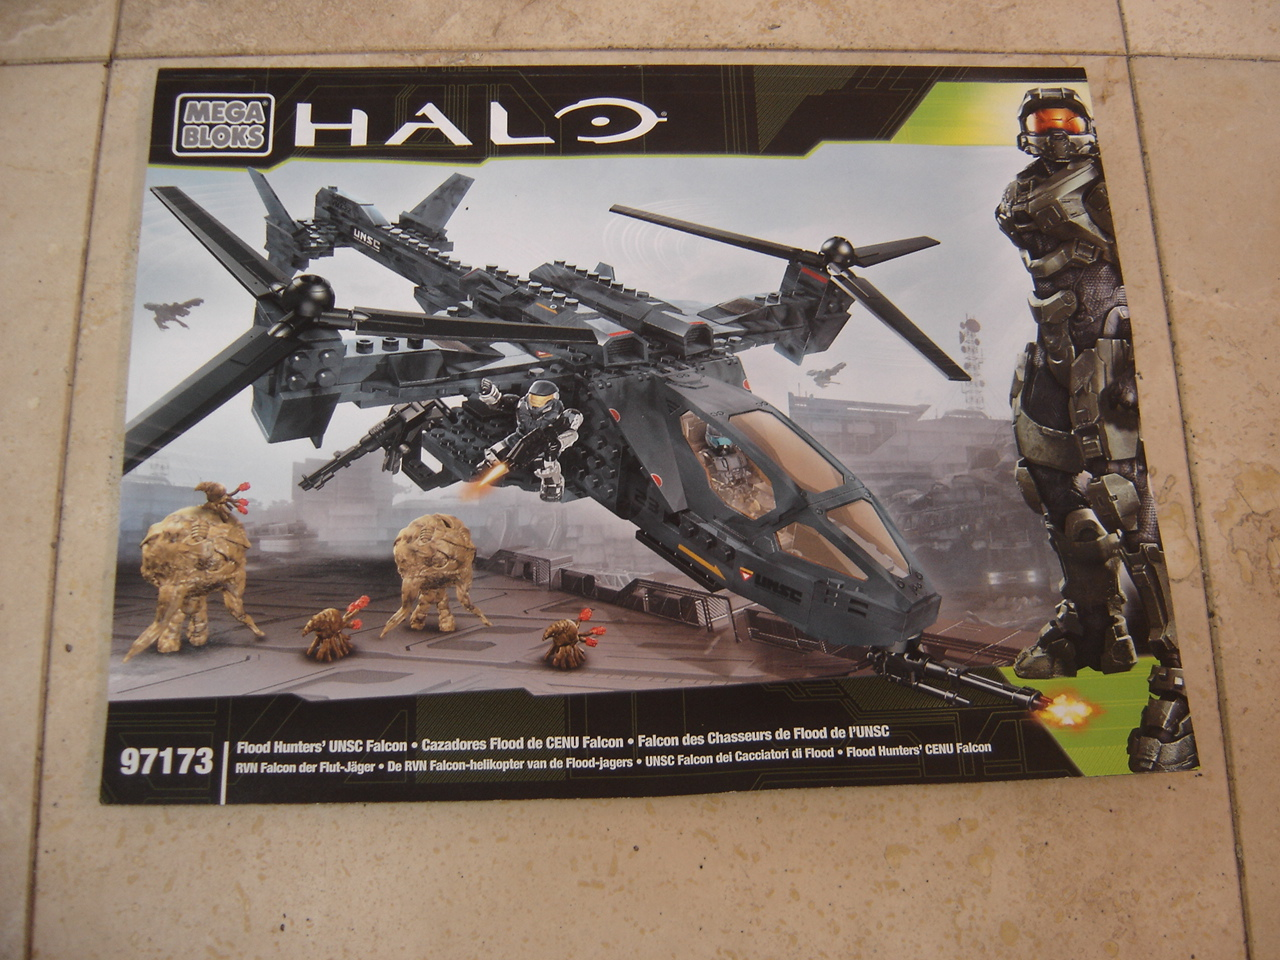 Mega Bloks Halo Flood Hunters Unsc Falcon 97173 Replacement